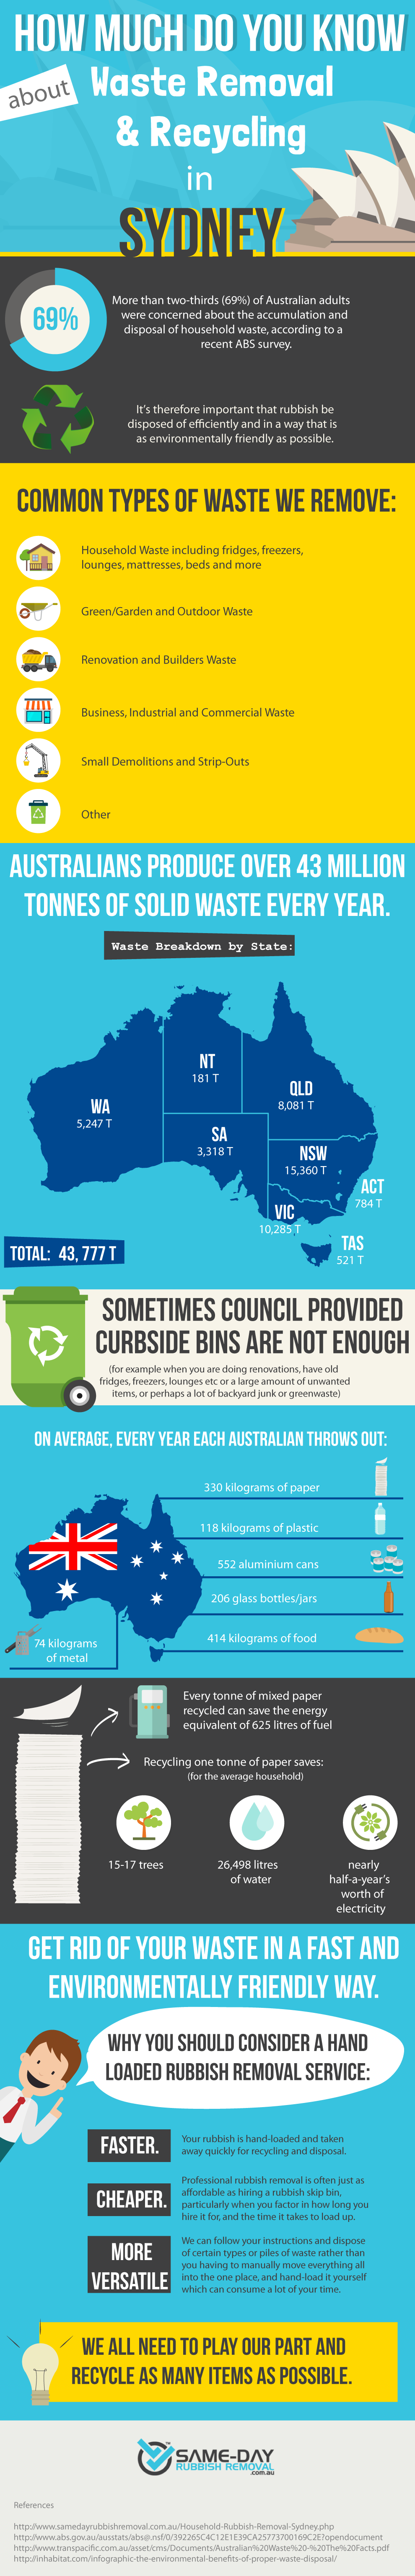 Australian Waste and Recycling Infographic